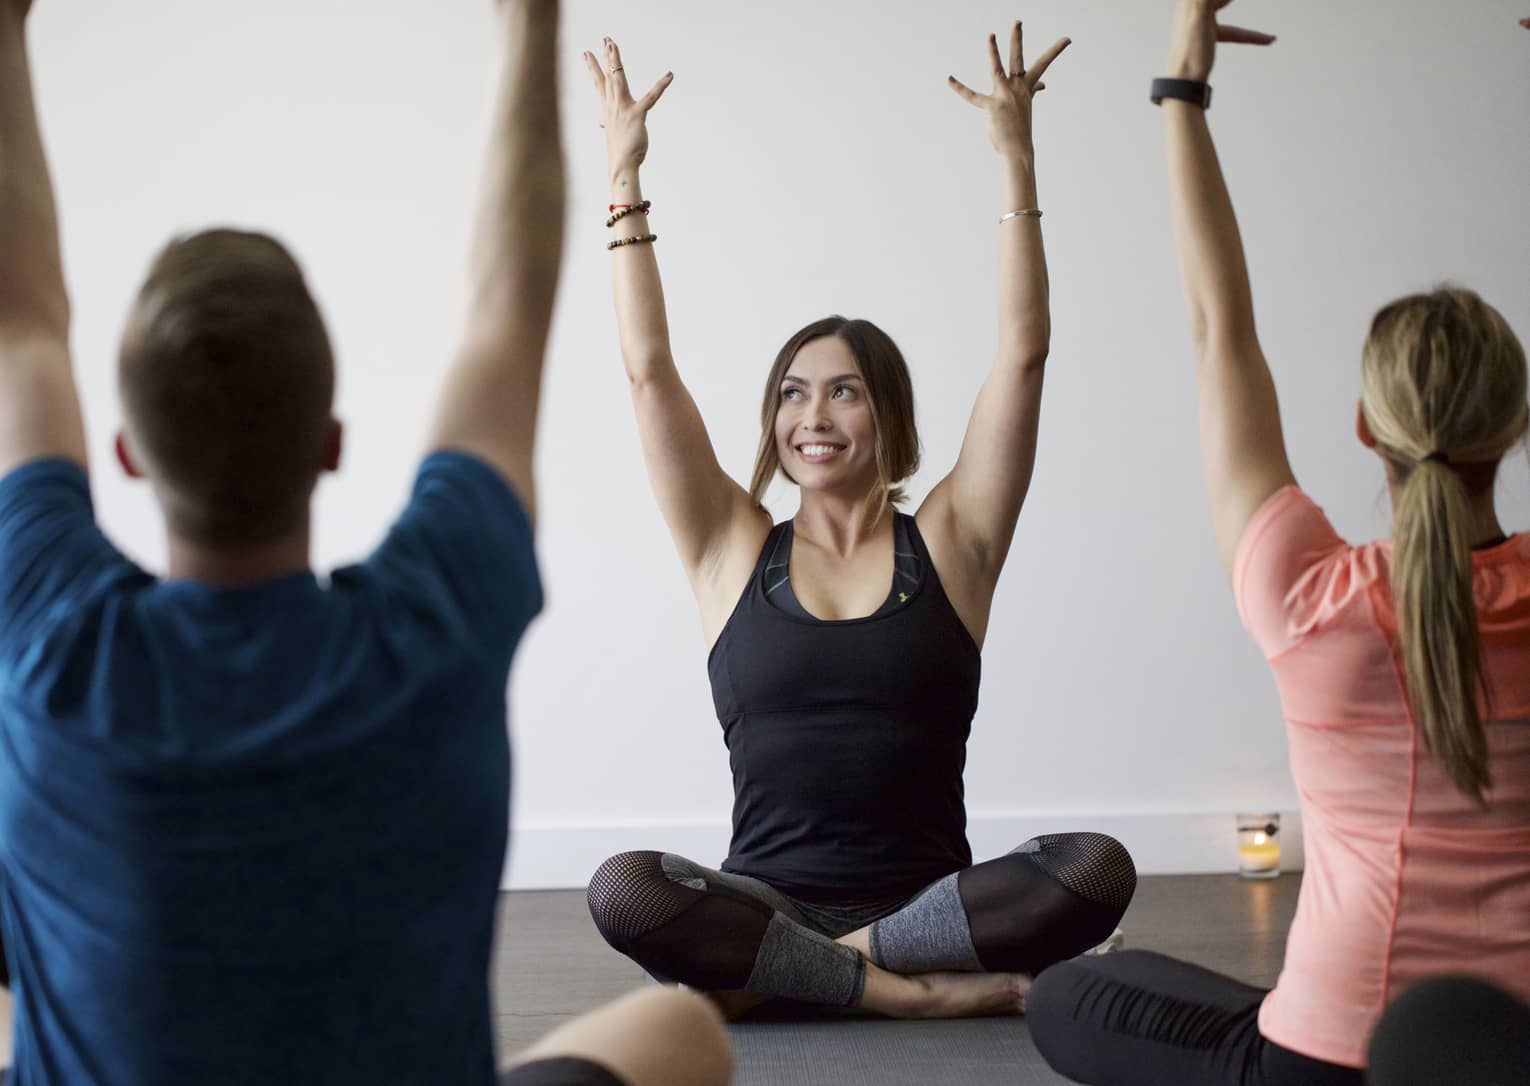 Man, woman sit in front of smiling yoga instructor, cross-legged with arms raised above head